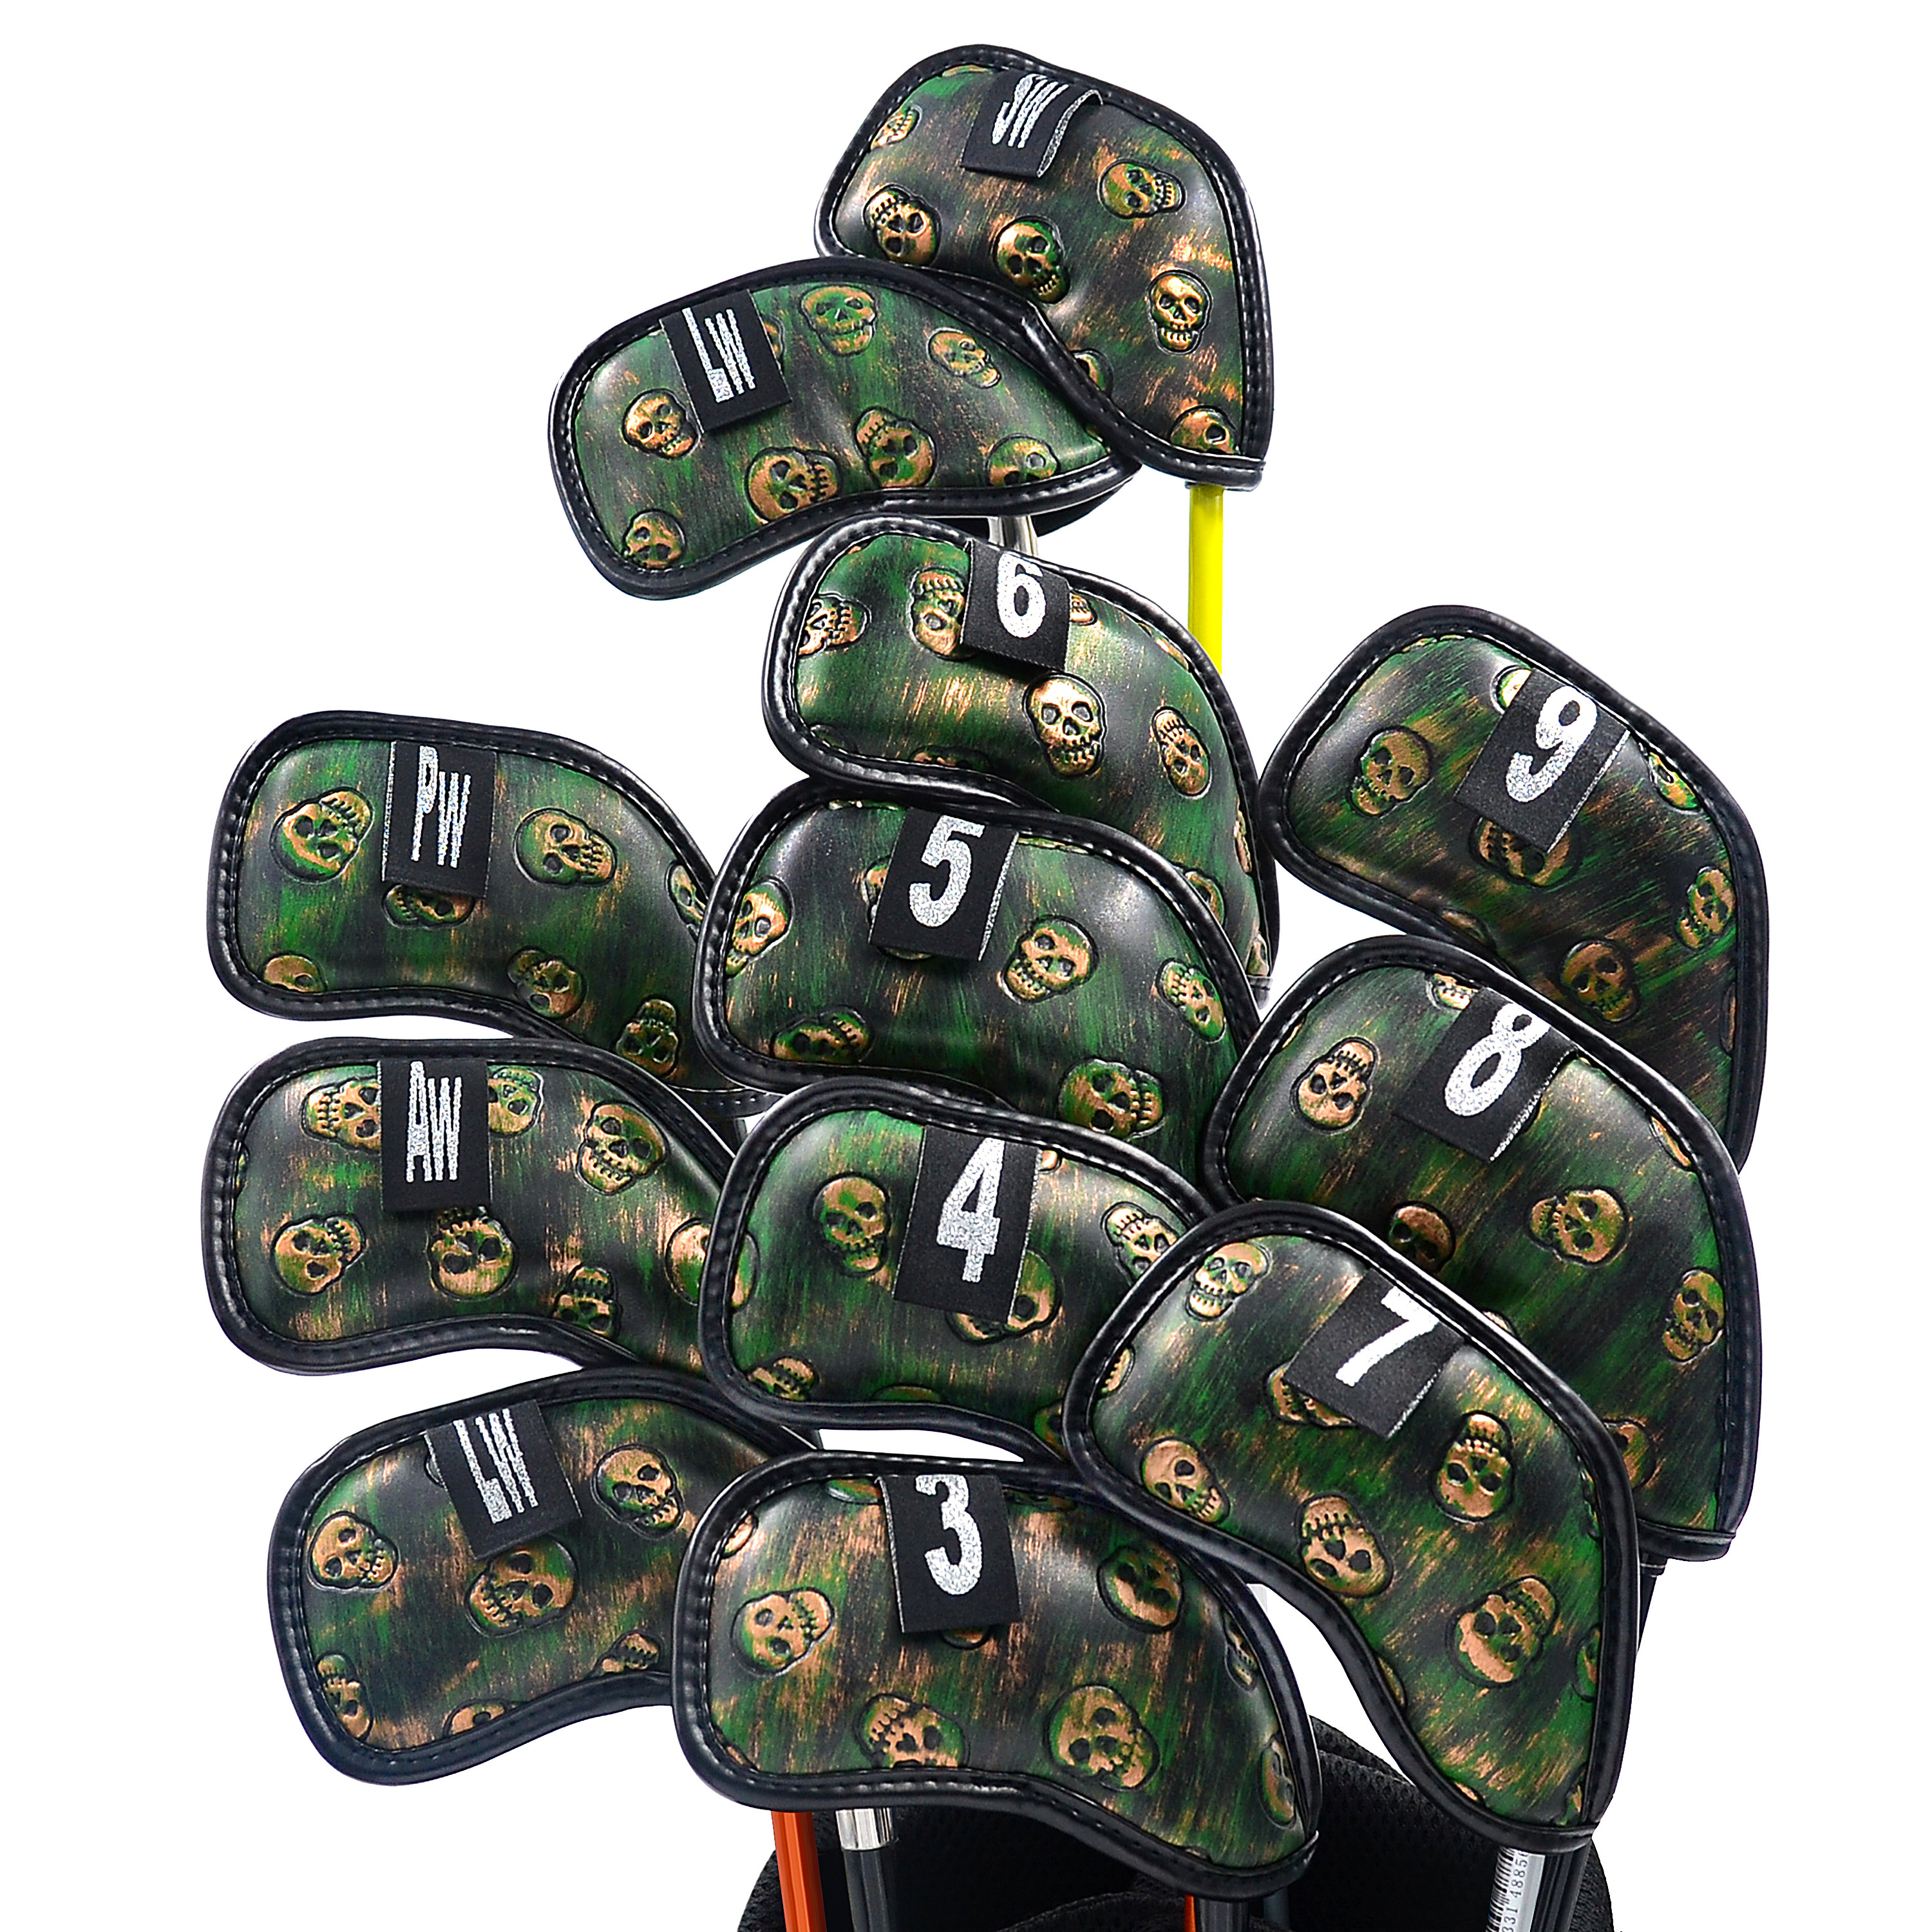 NEW Original Champkey Monster Skull Golf Iron Head Cover Pack of 12pcs(3~9,A,P,S,L,L)- Black Green Color Headcover